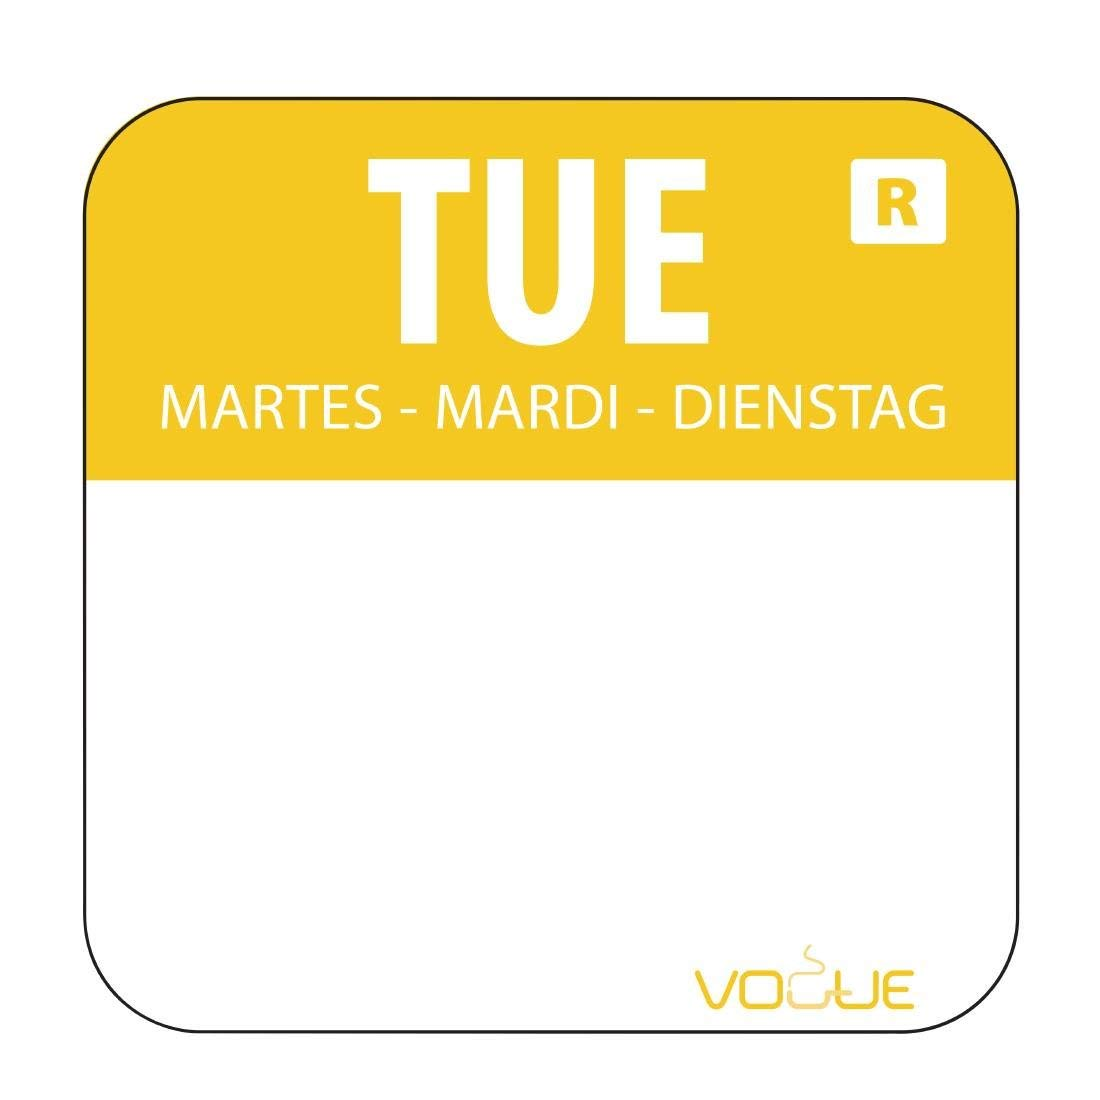 Day Of The Week Labels Removable Tuesday Tuesday - Yellow. 1000 labels per roll